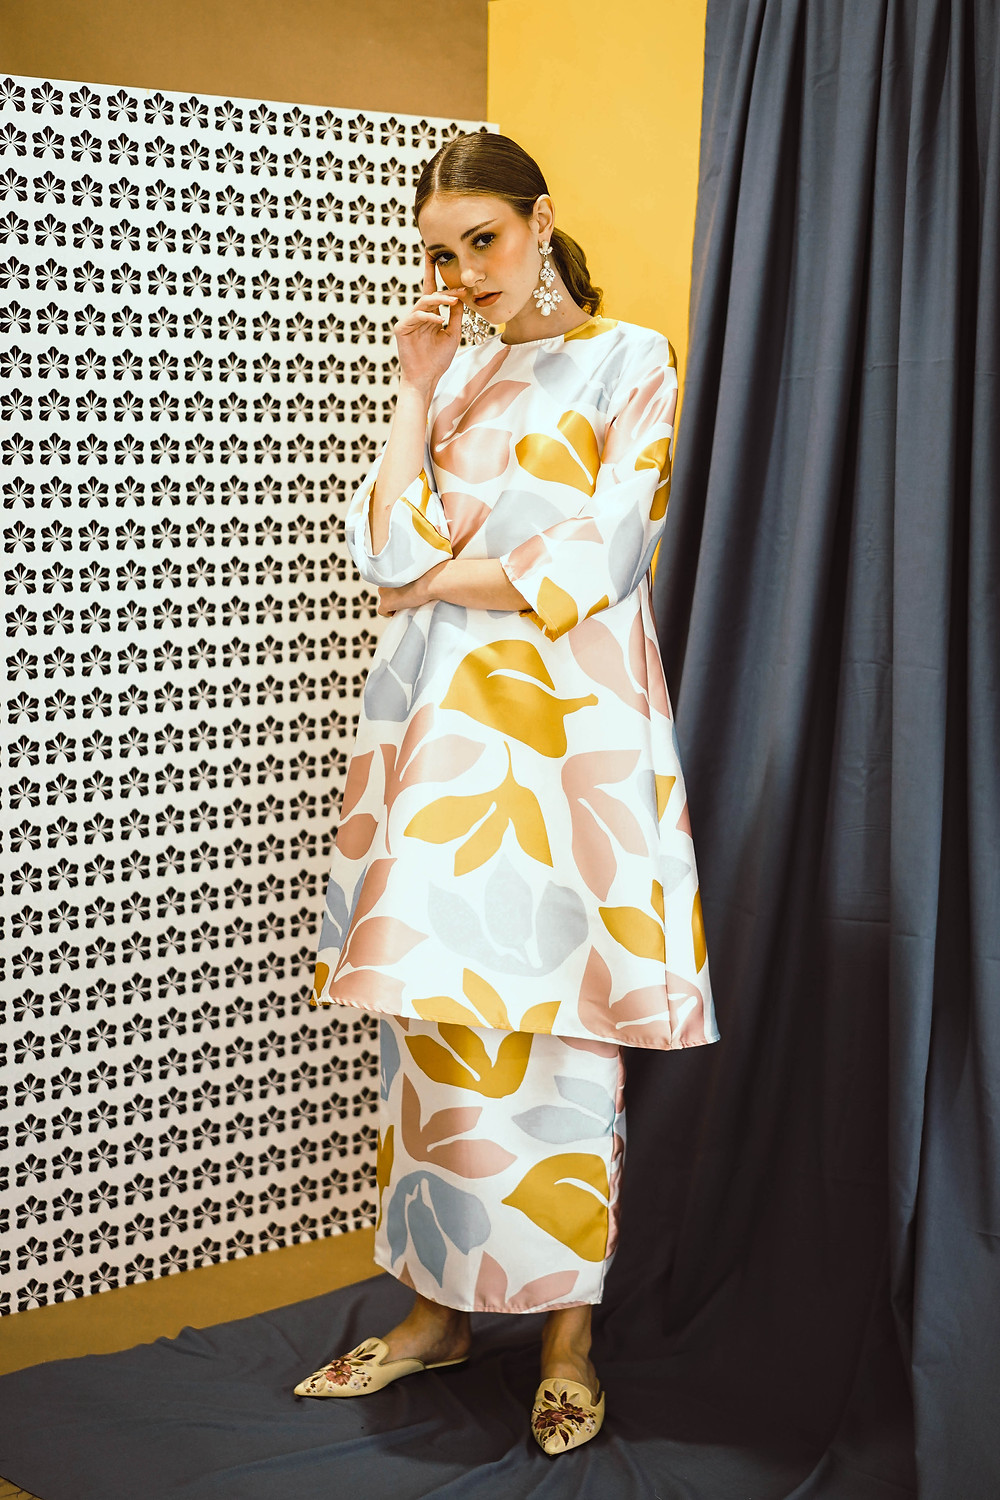 'Nona' - Katt Ibrahim's Raya 2019 Collection